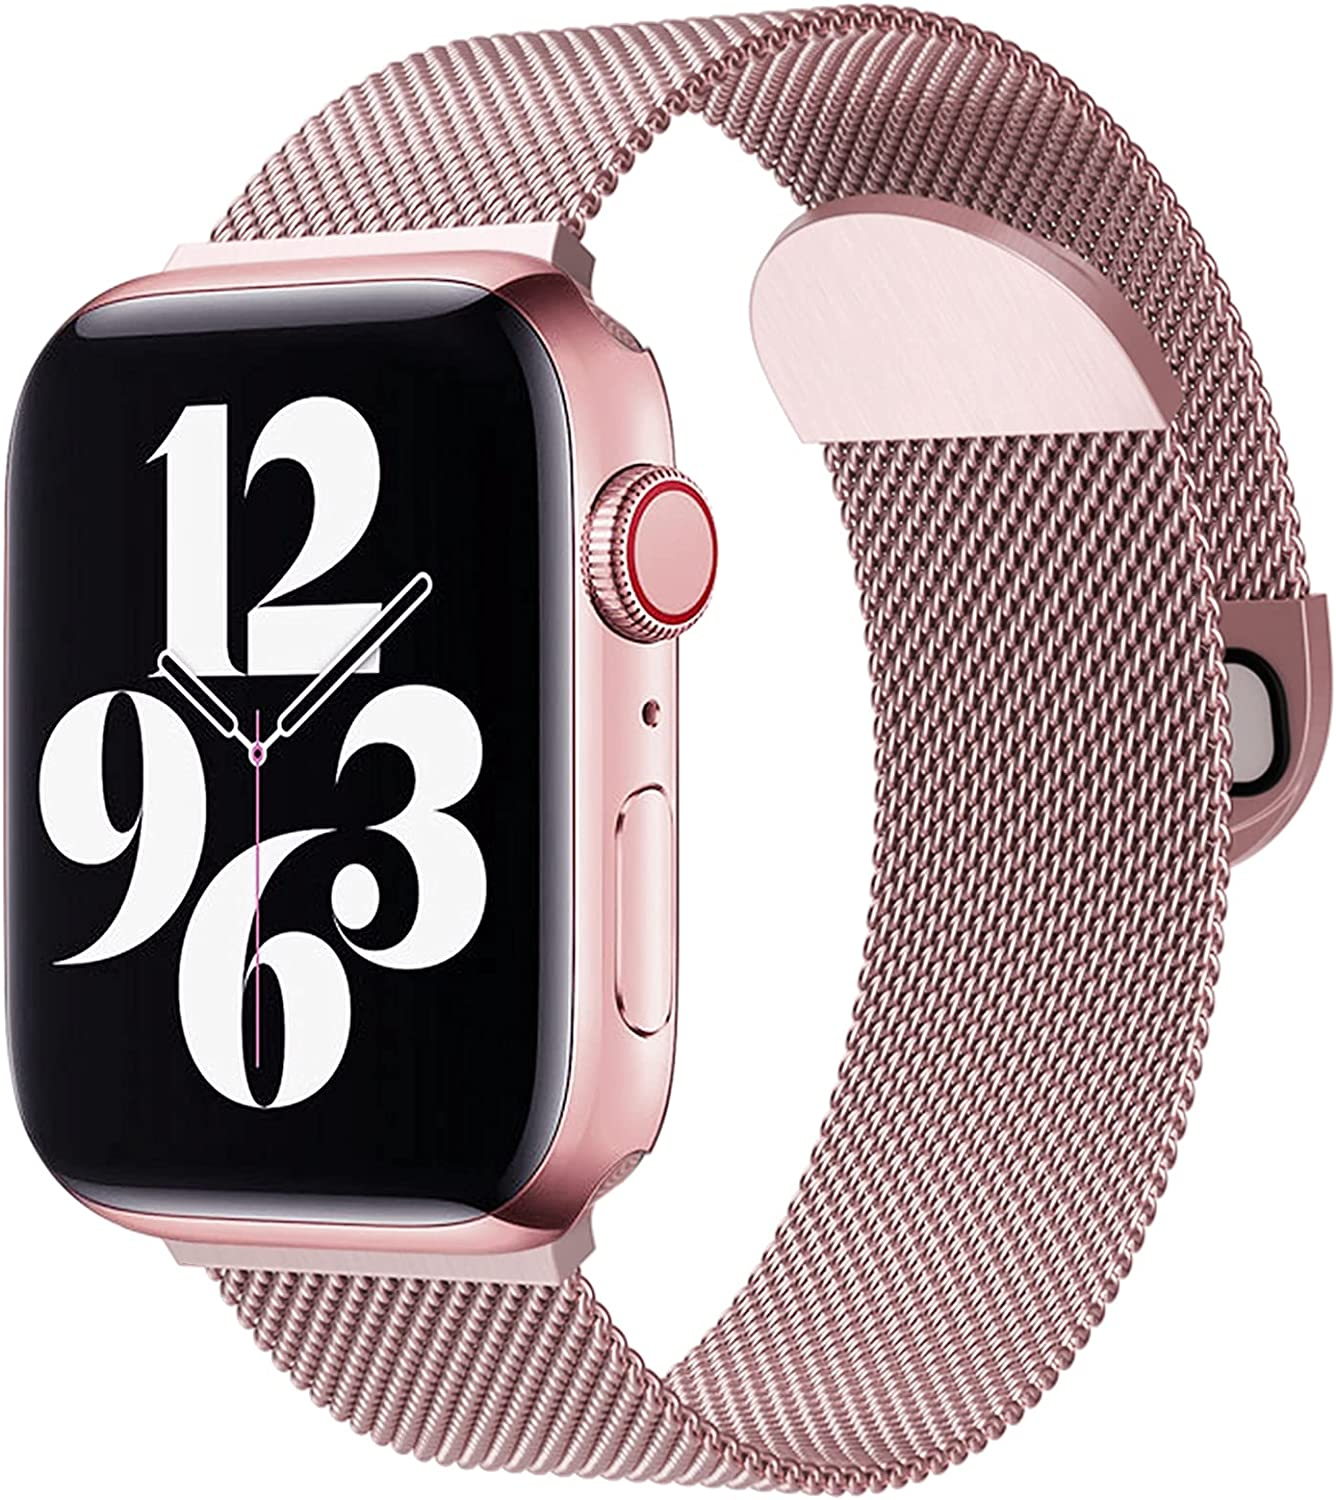 WAAILU Compatible with Apple Watch Band 38mm 40mm 42mm 44mm, Sport Watch Strap Stainless Steel Mesh Magnetic Clasp Compatible for iWatch Series SE/6/5/4/3/2/1